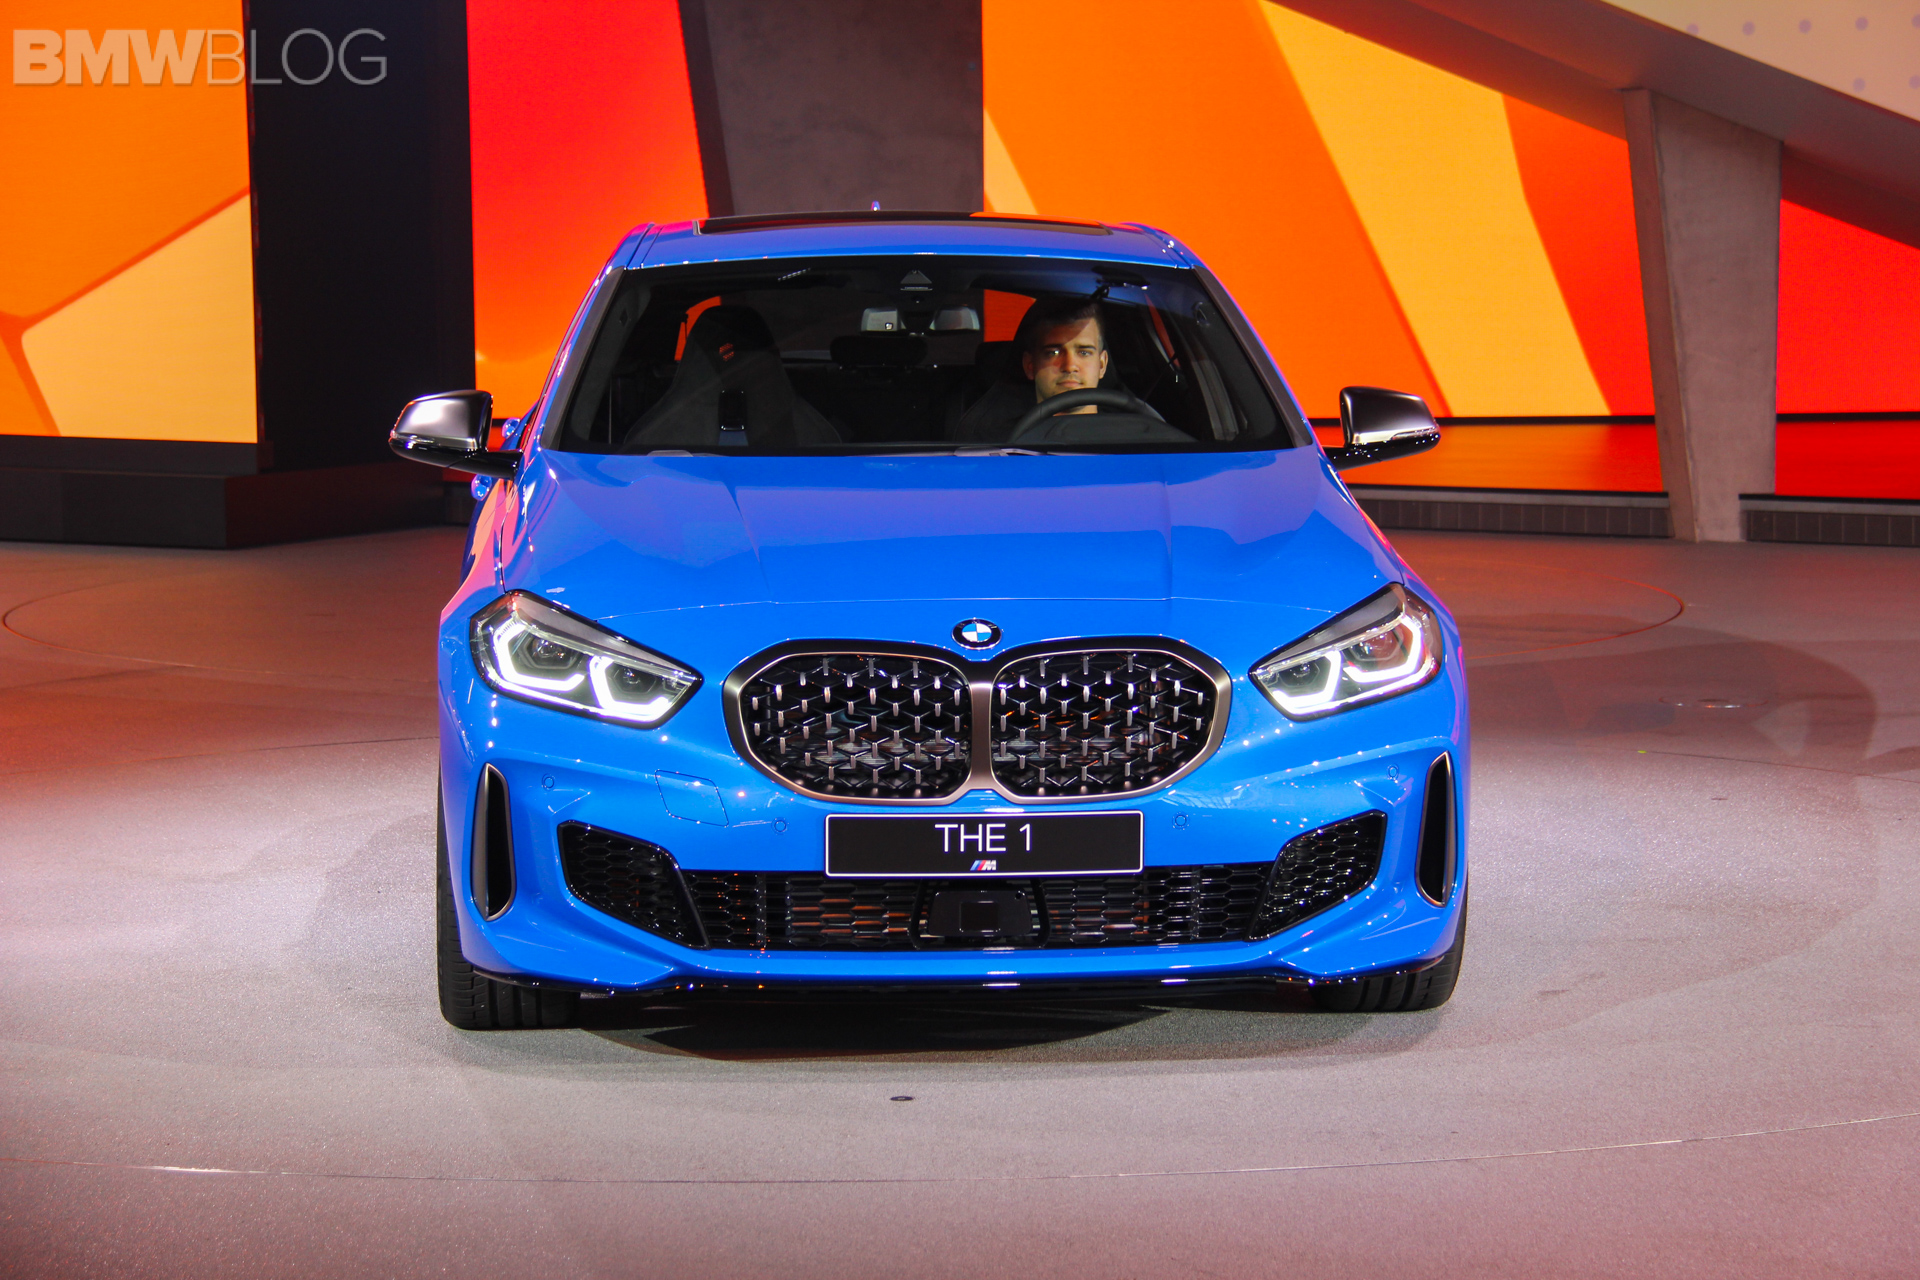 NextGen: The 2019 BMW 1 Series makes its world debut